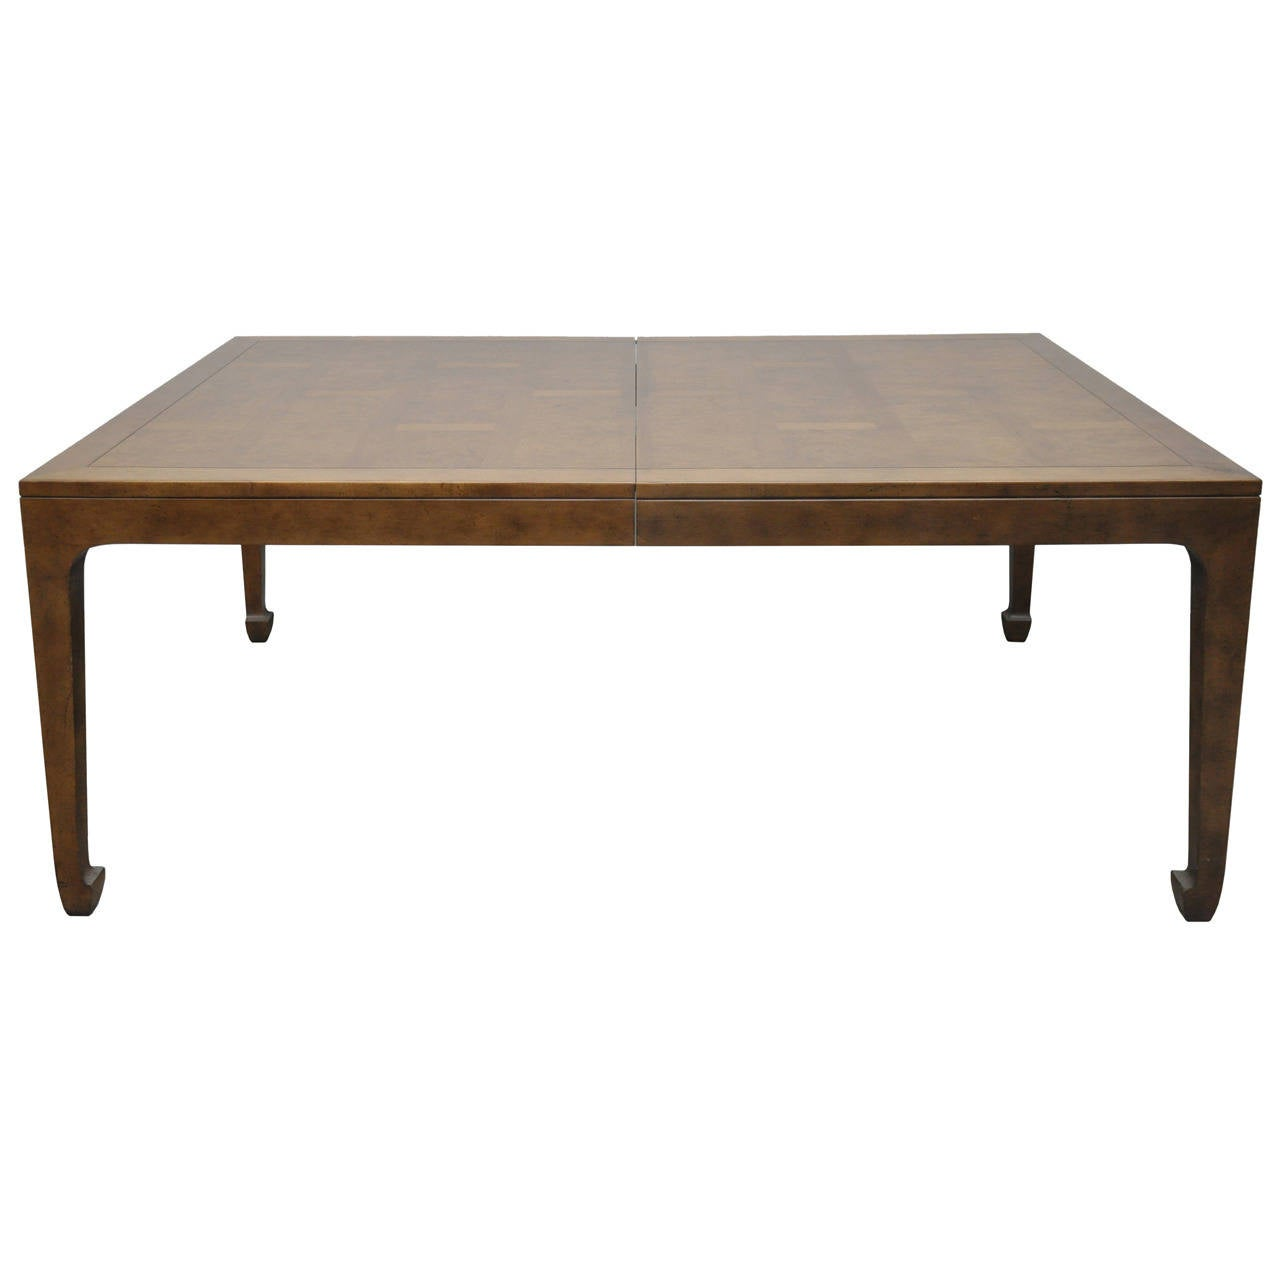 Baker Furniture Asian Style Mid Century Dining Table W 3 Leaves At 1stdibs